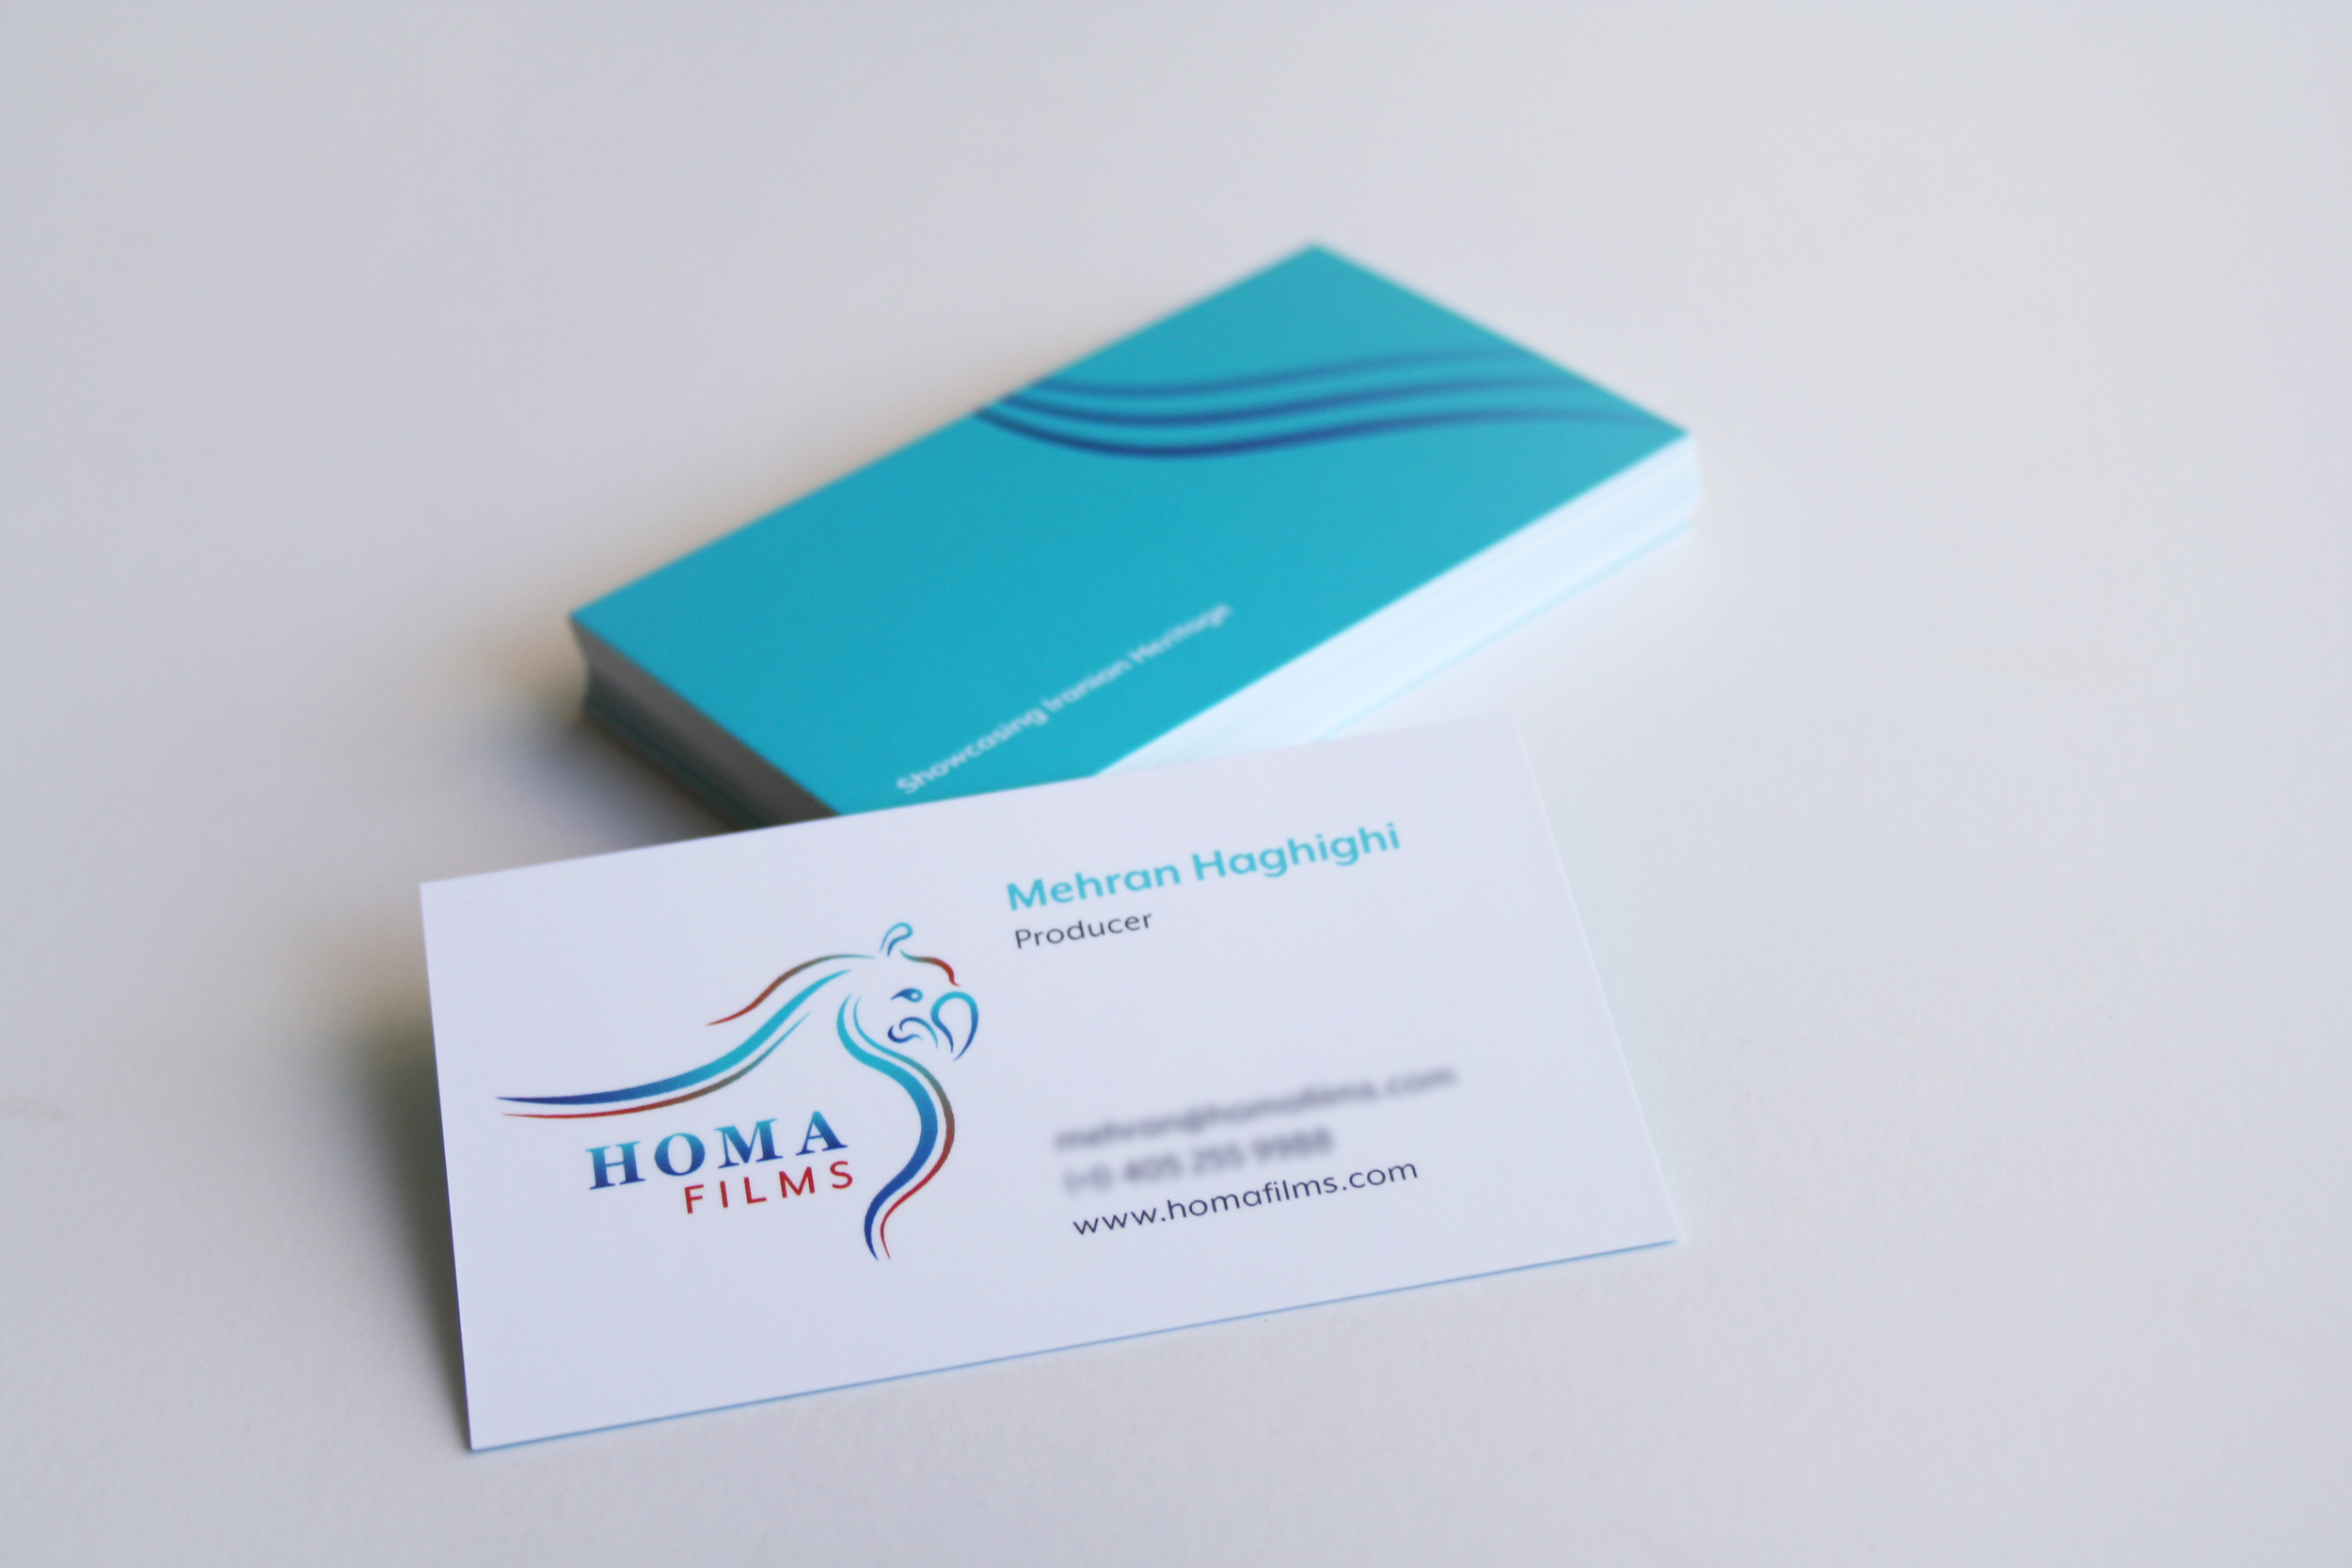 Brand Identity and business card for Homa Films (process files available upon request)